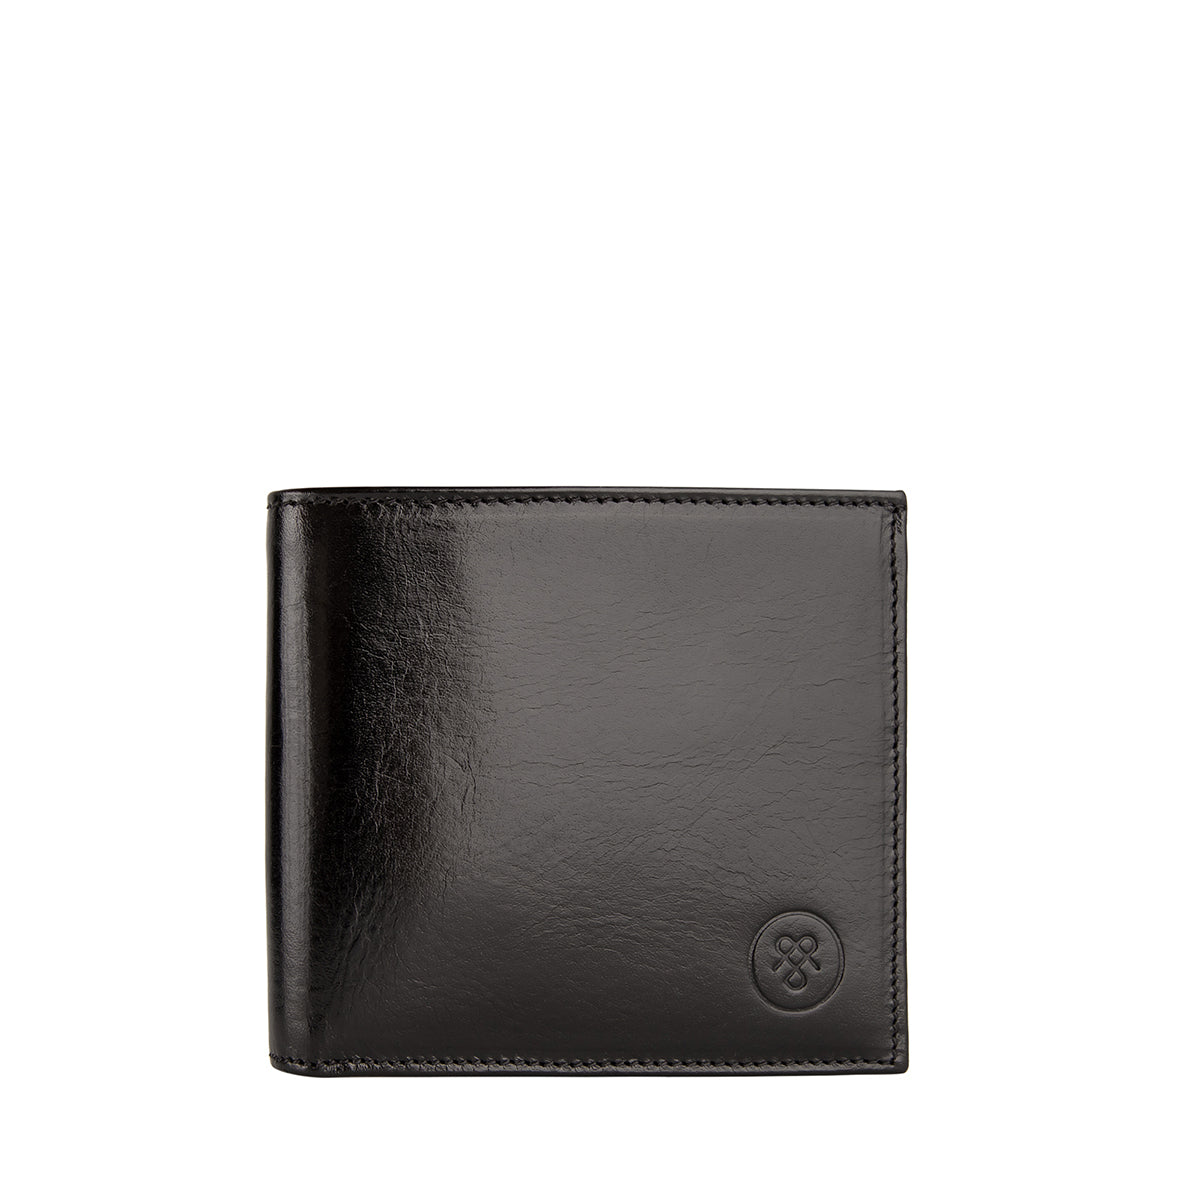 Image 1 of the 'Vittore' Black Veg-Tanned Leather Bi-Fold Wallet